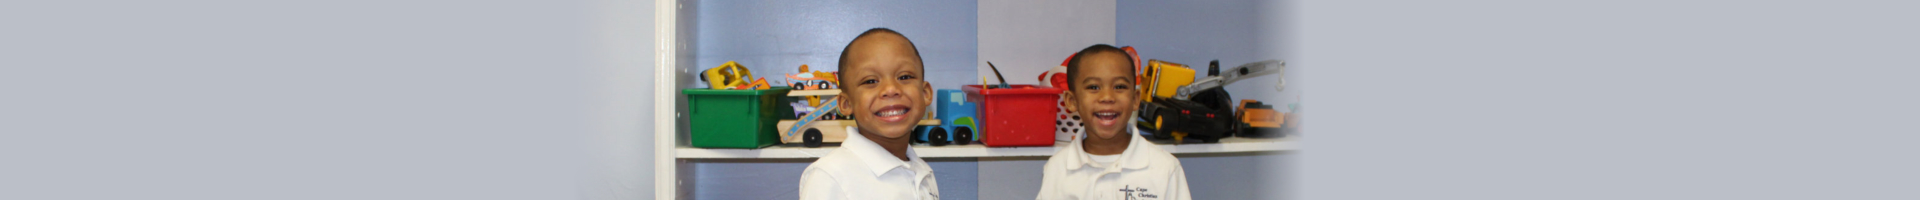 Two young boys smiling